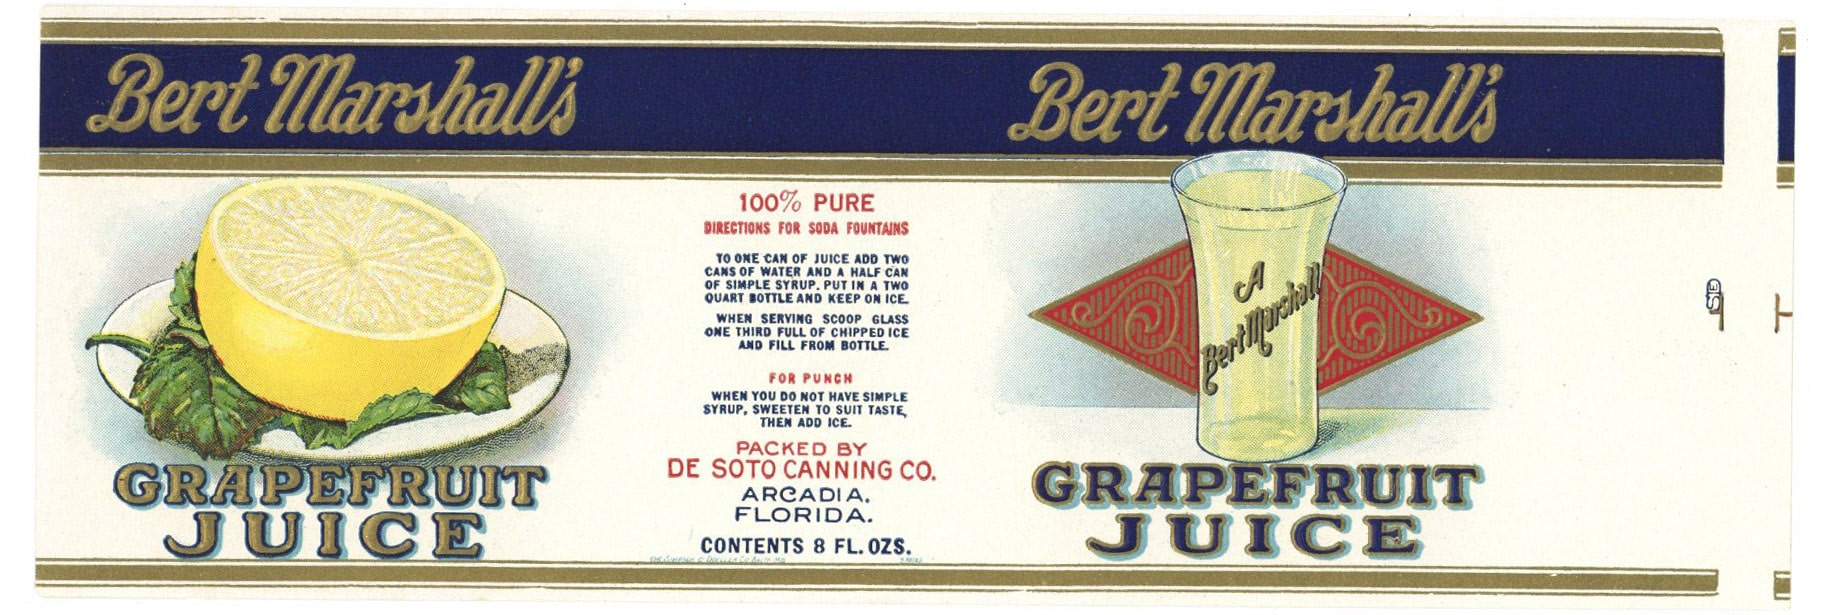 Bert Marshall's Brand Vintage Florida Grapefruit Juice Can Label